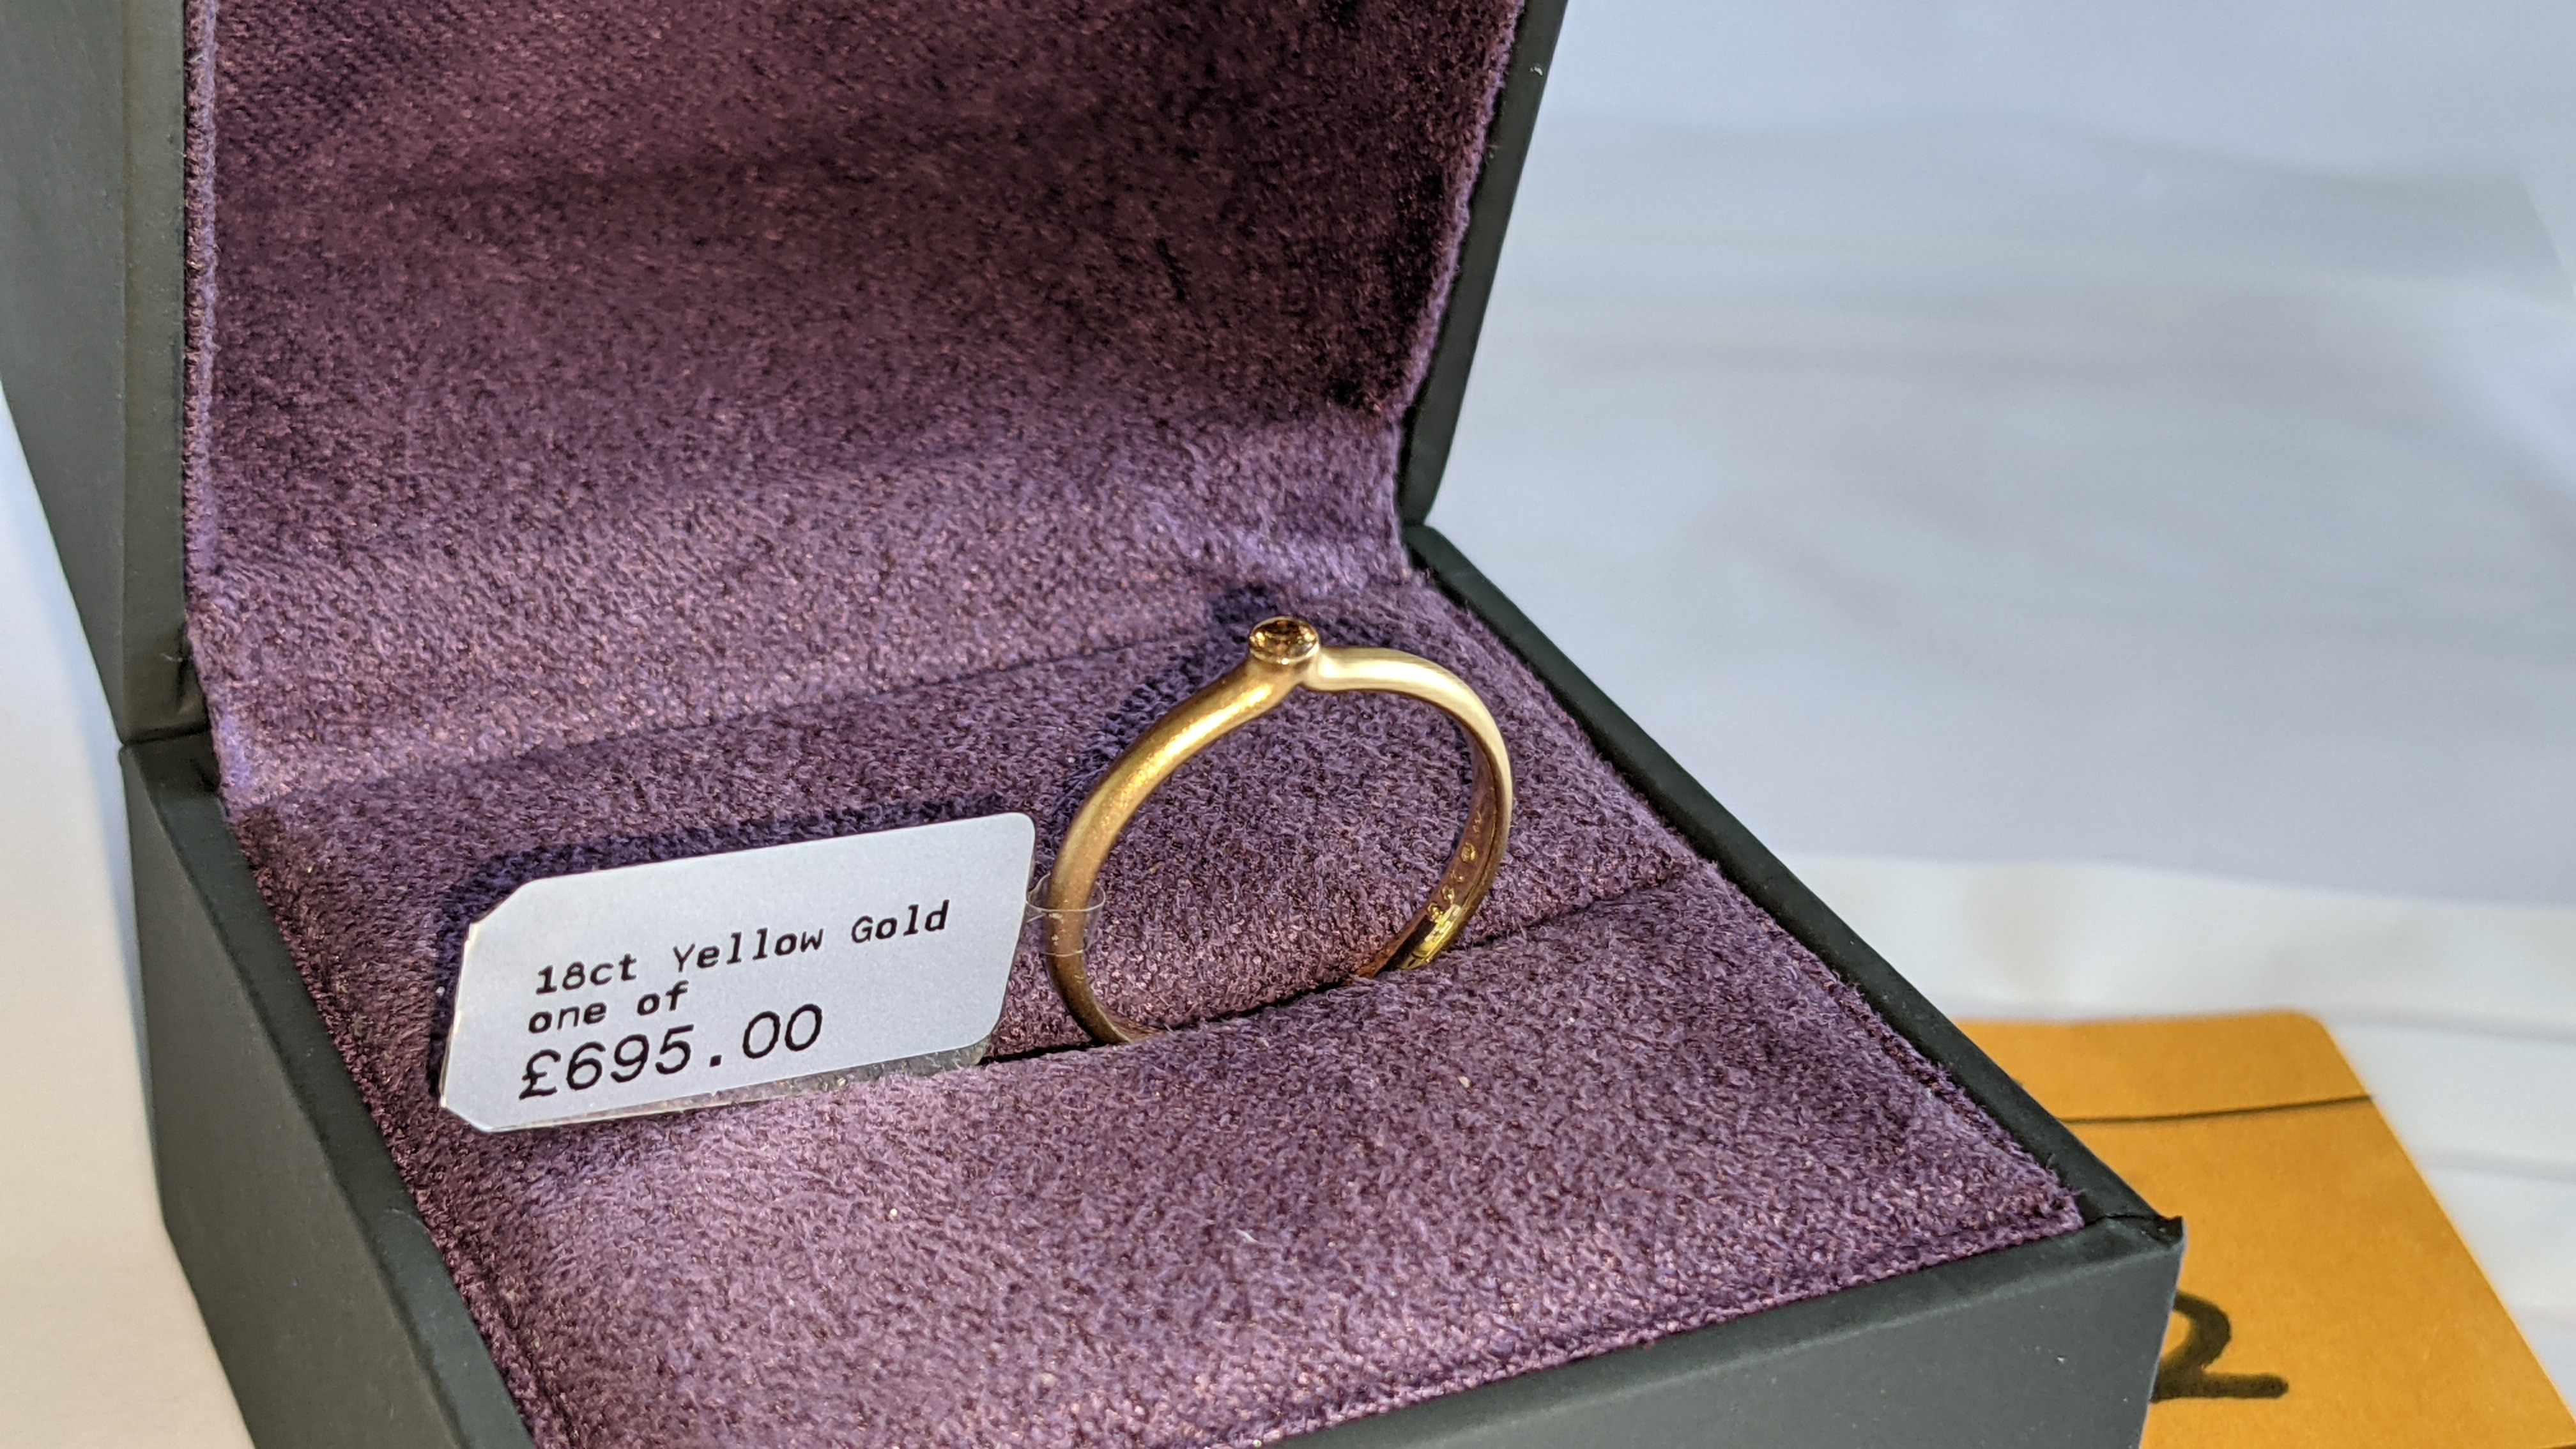 18ct yellow gold & champagne diamond ring RRP £695 - Image 2 of 14